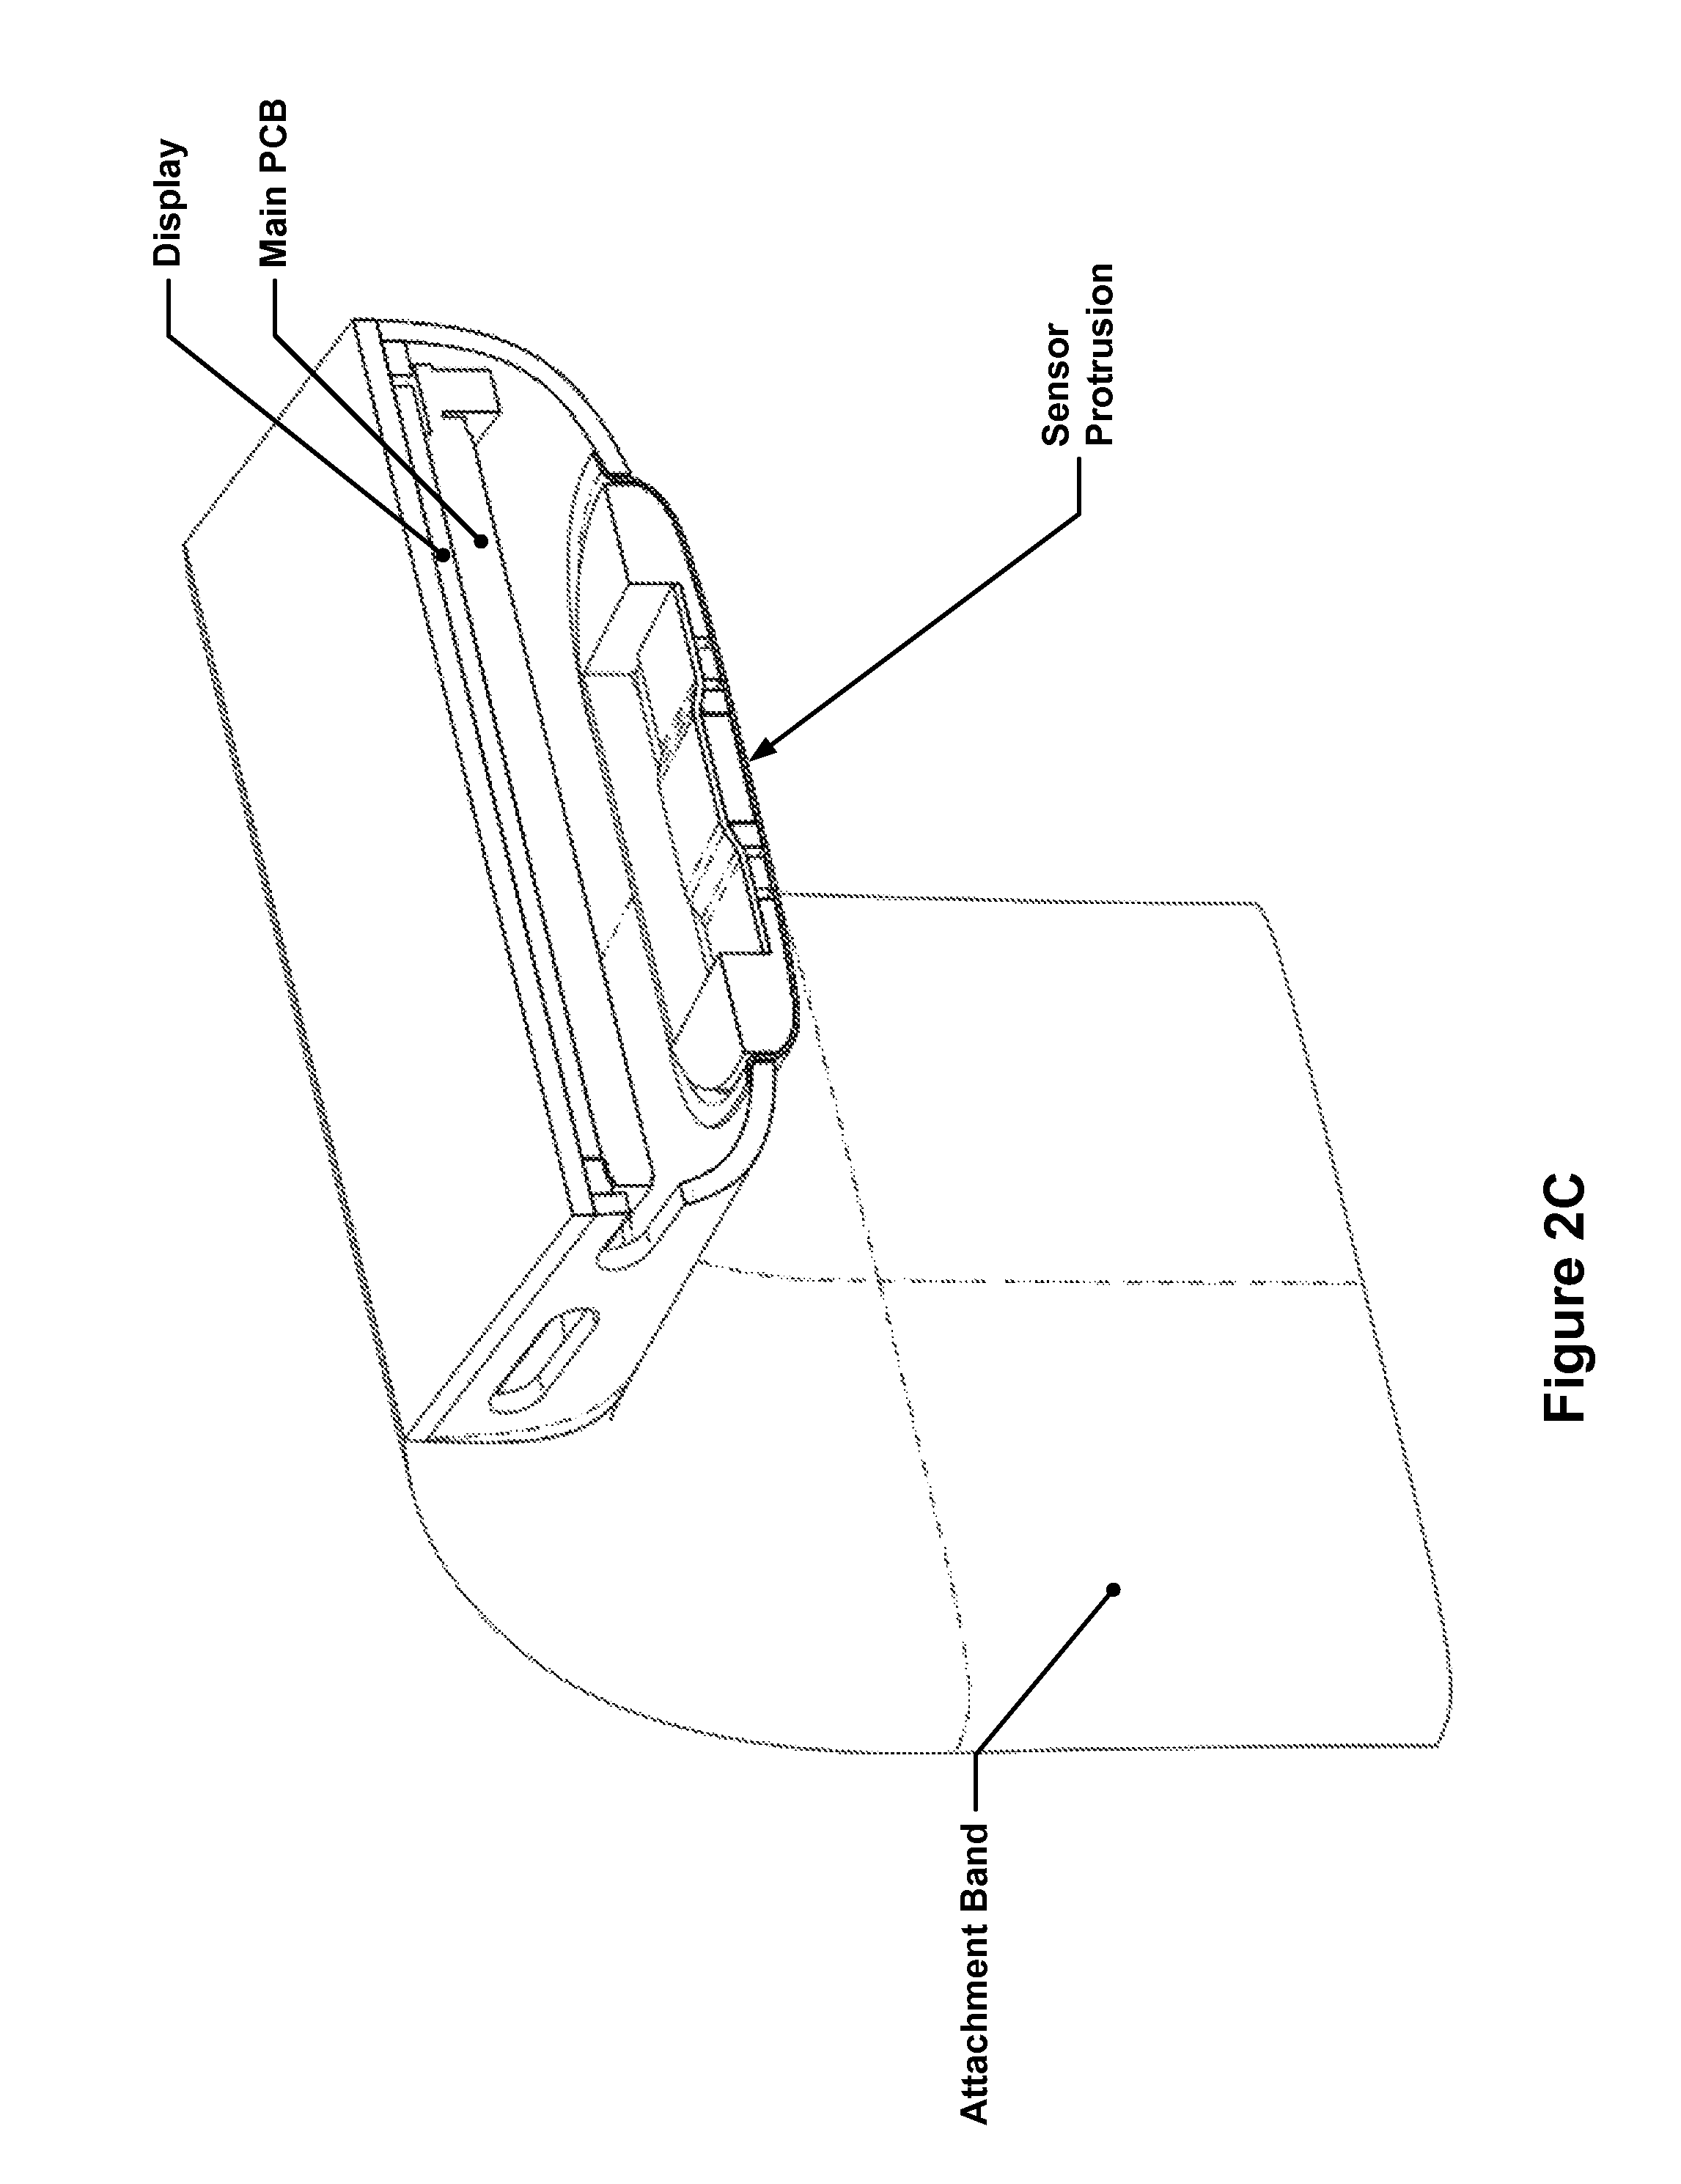 patent us 8 920 332 b2 Ford Windstar Air Conditioning Diagram patent